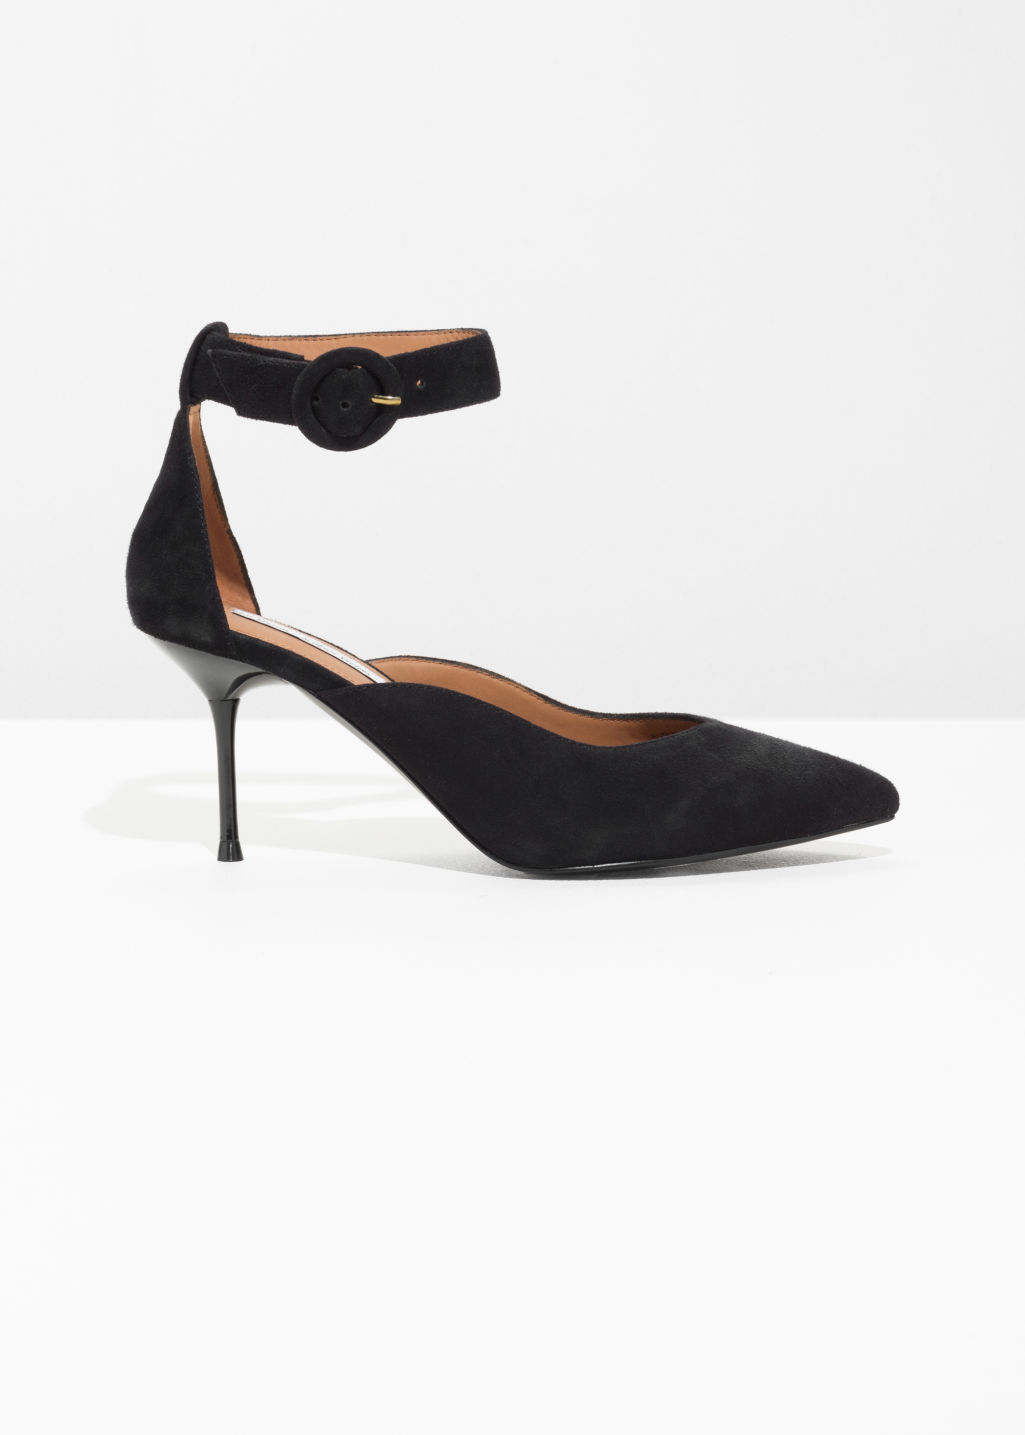 & OTHER STORIES Curved Ankle Strap Pumps